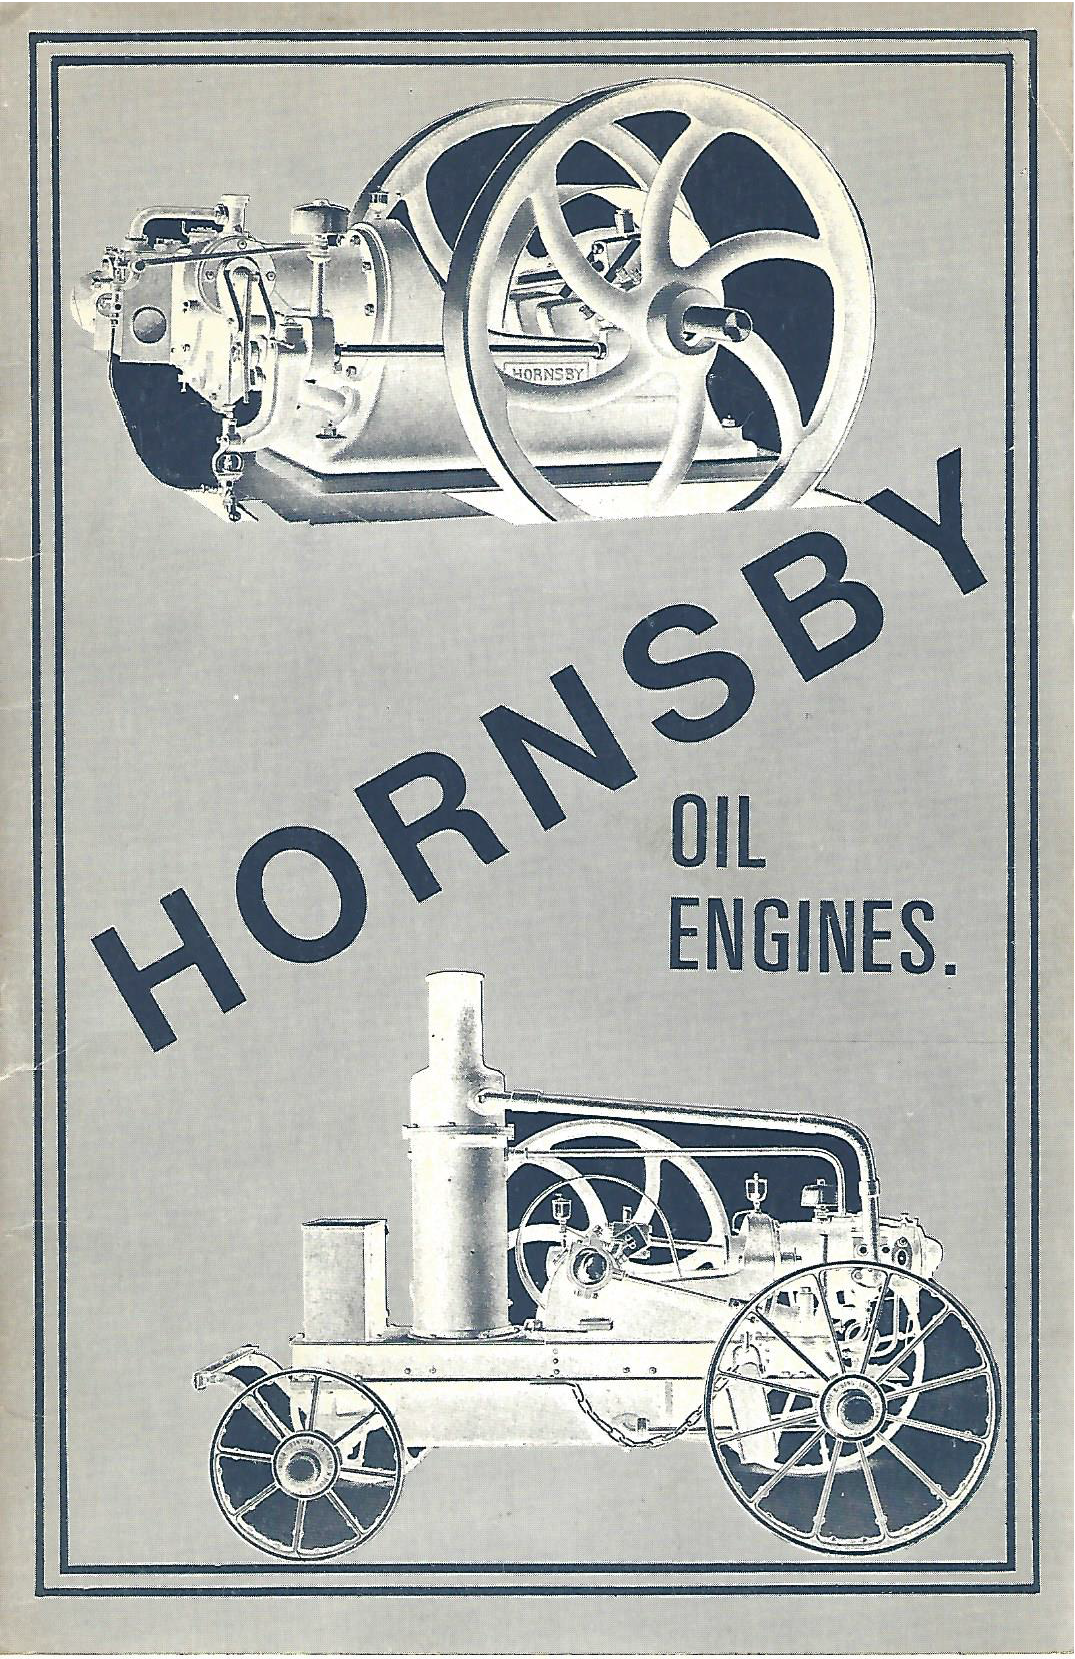 Hornsby Oil Engines